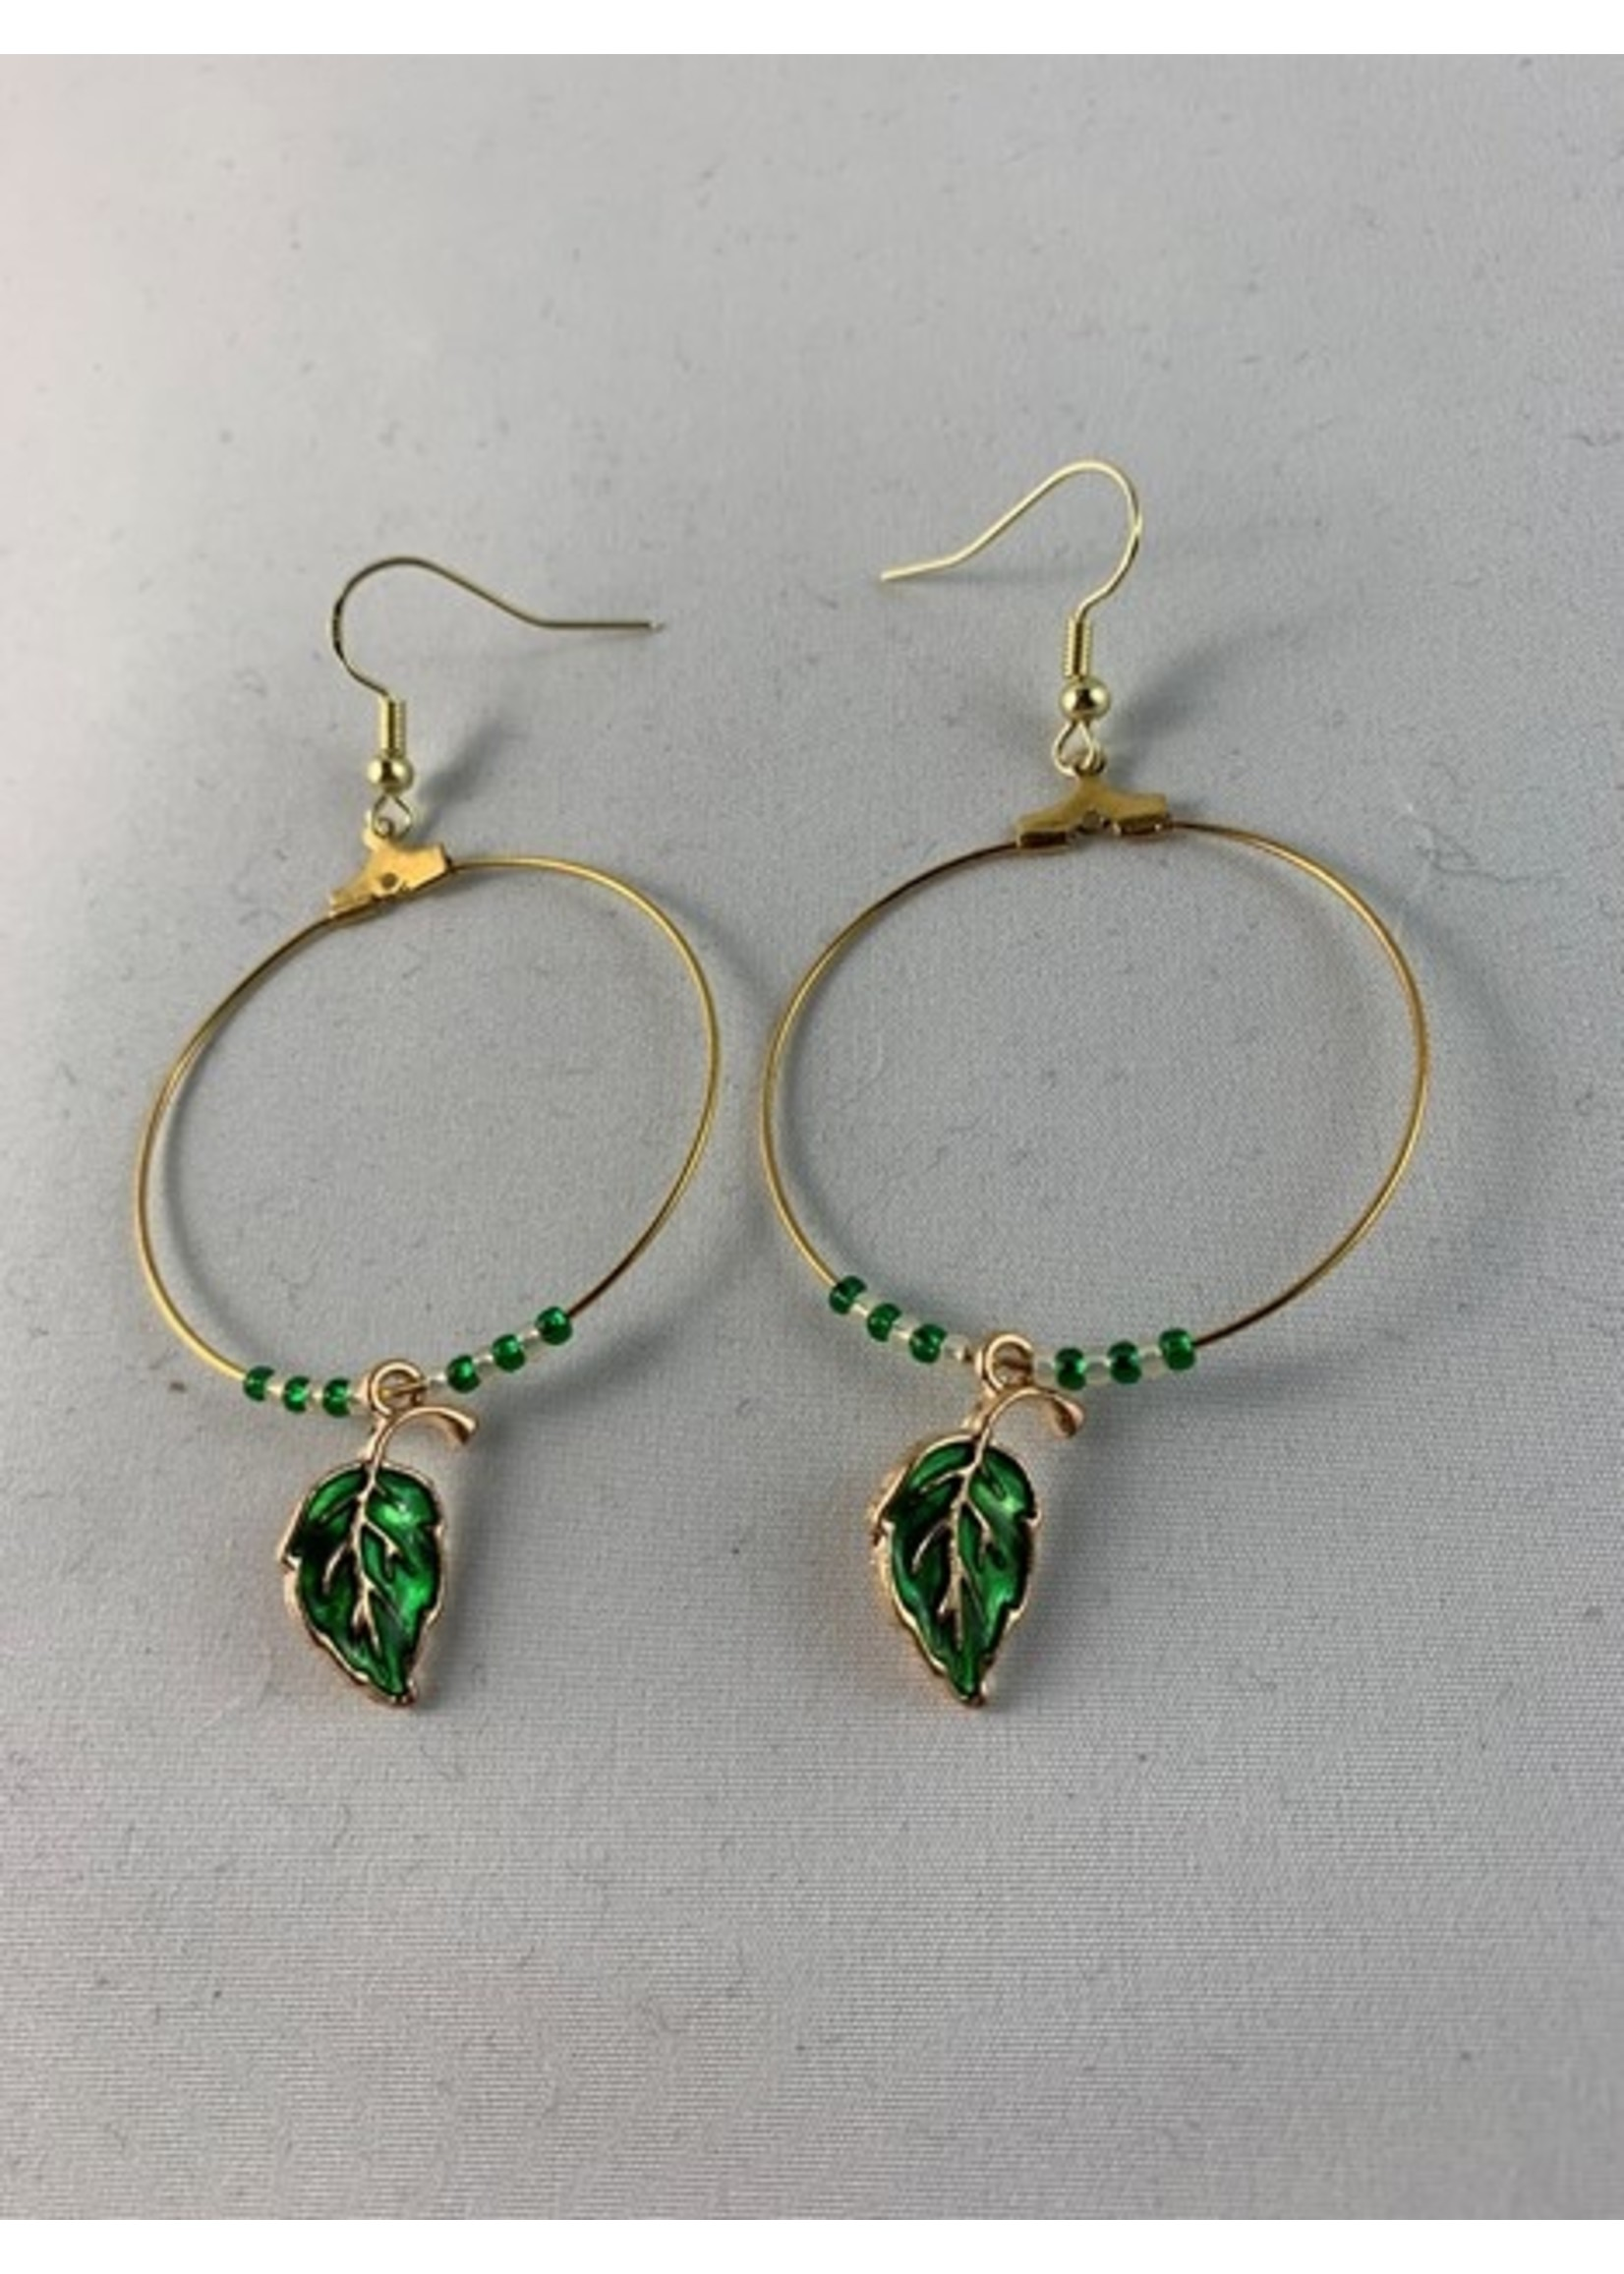 Large Hoop Earrings Gold with Green Leaf